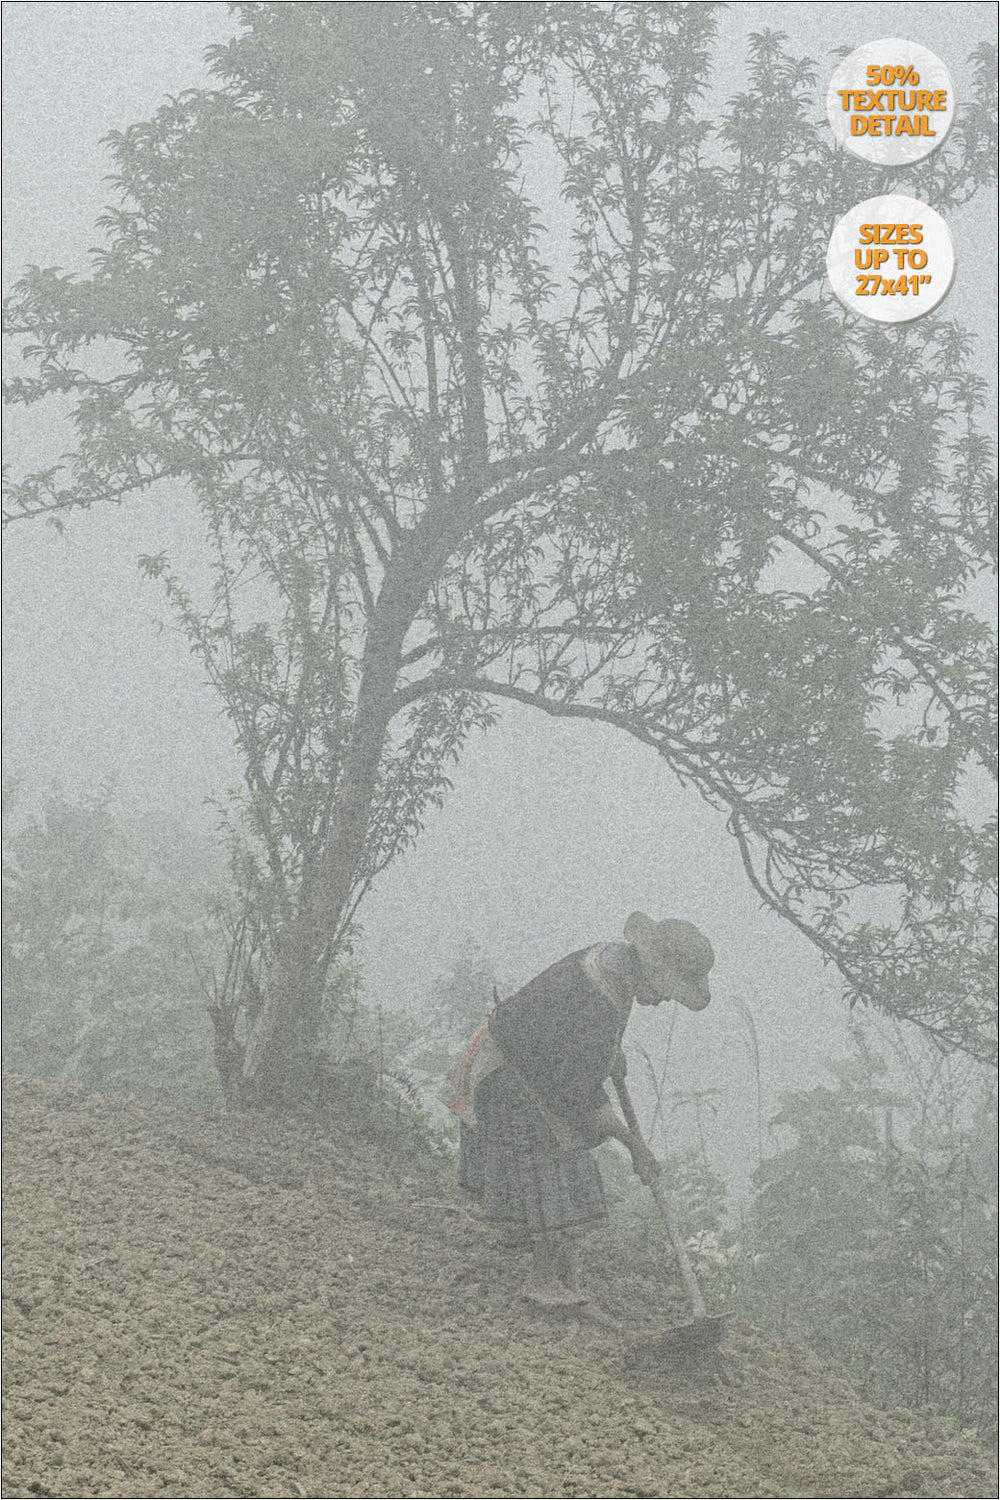 Hmong woman sowing in the fog, Bac Ha, Vietnam. | 50% Magnification Detail.